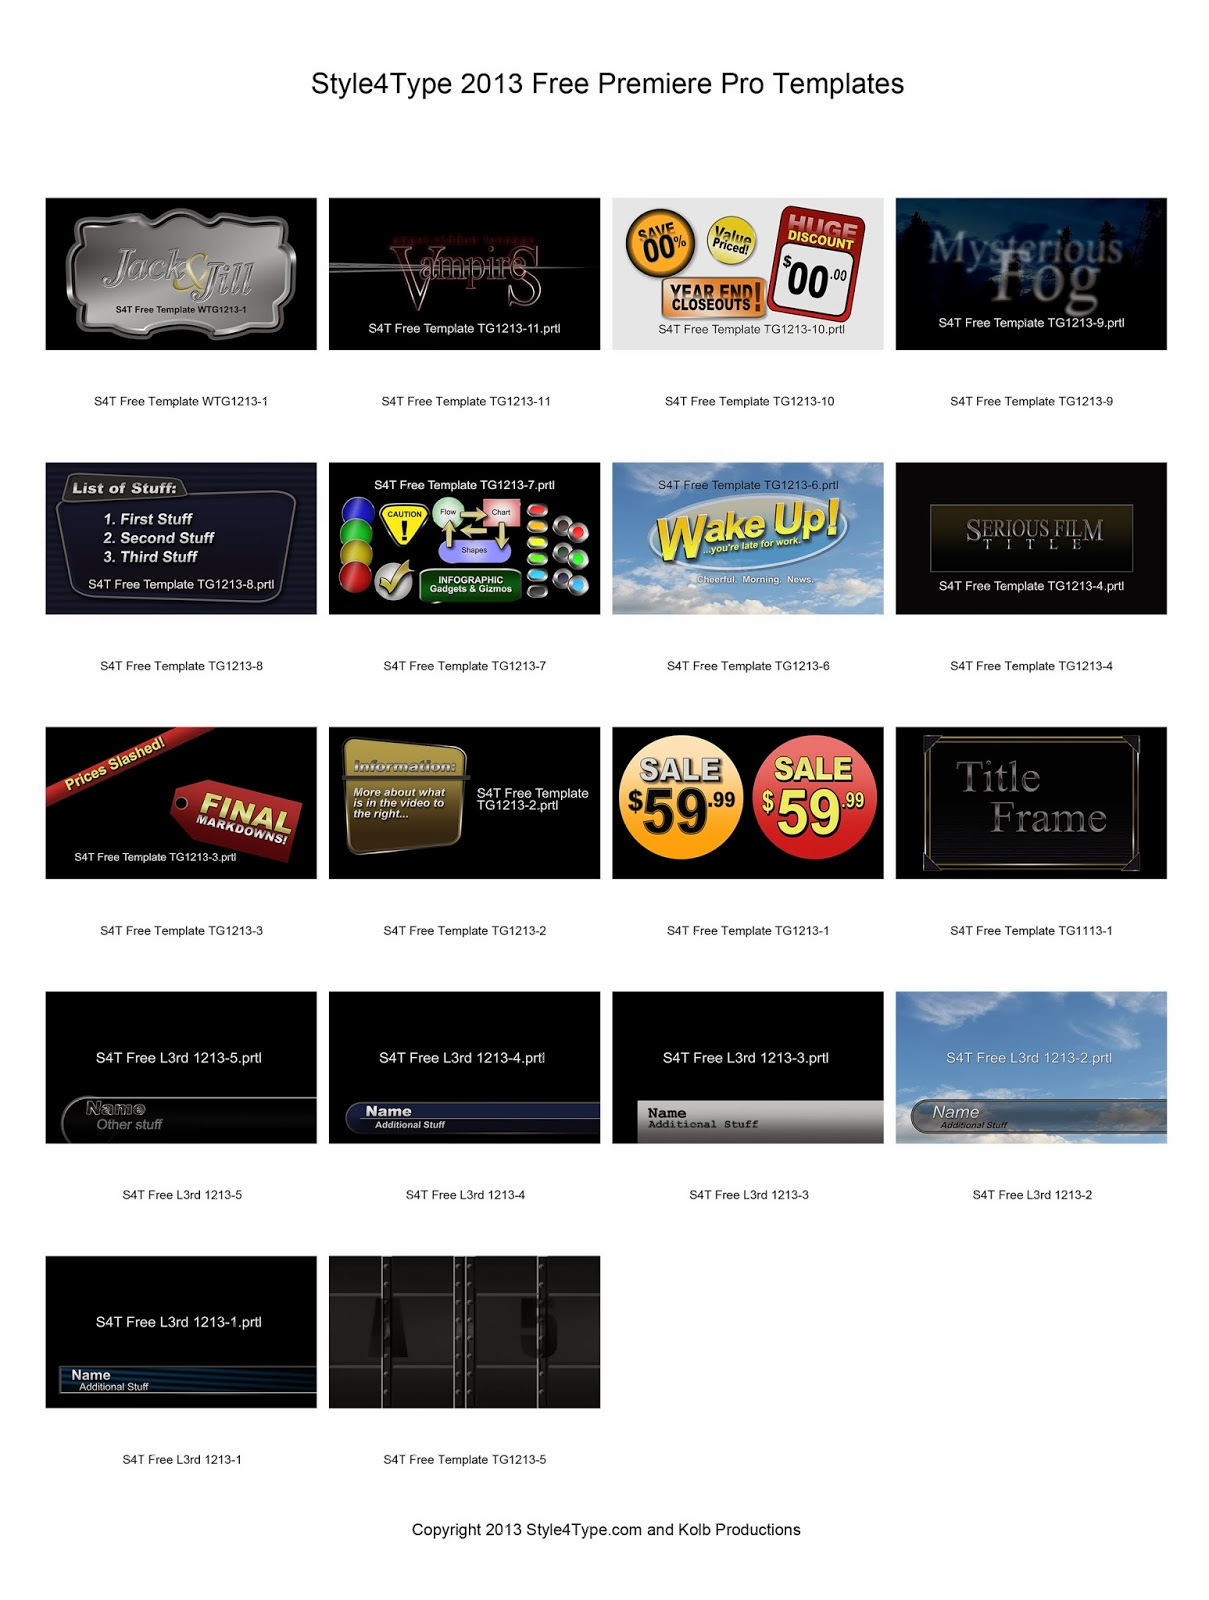 Style4type s4t 2013 free templates available as a single for Free premiere pro templates